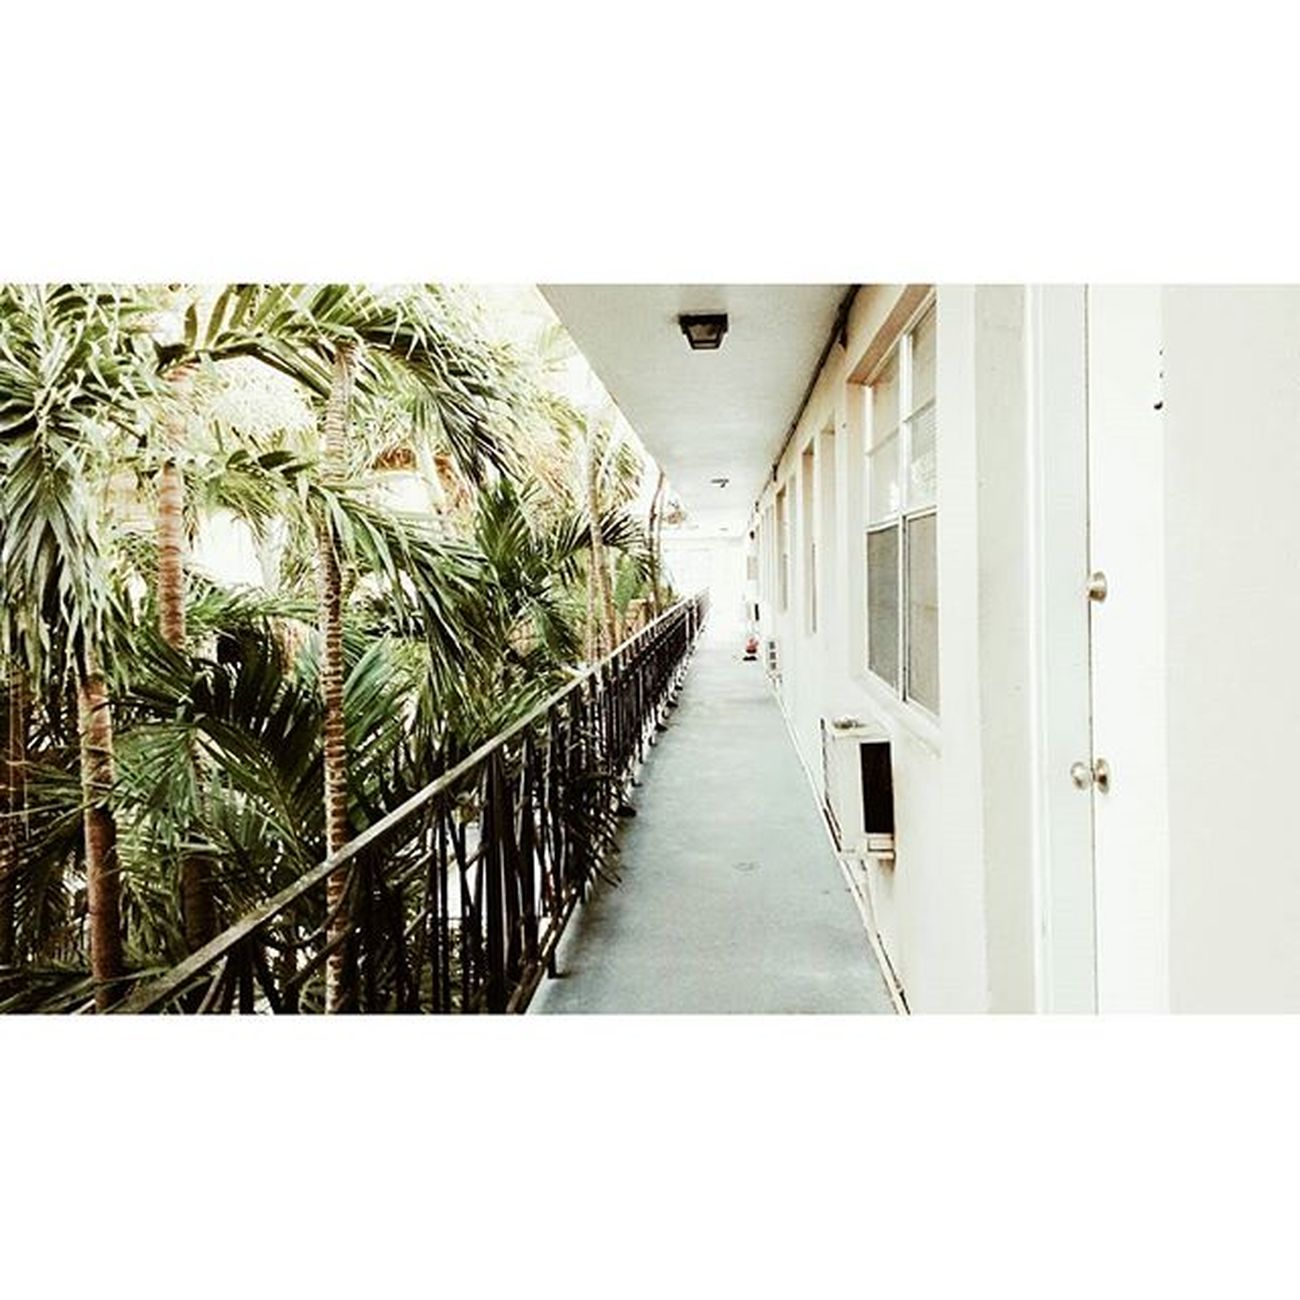 Palms 🌴 . . . CoconutGrove Green White Martha 'shouse MiamiLife